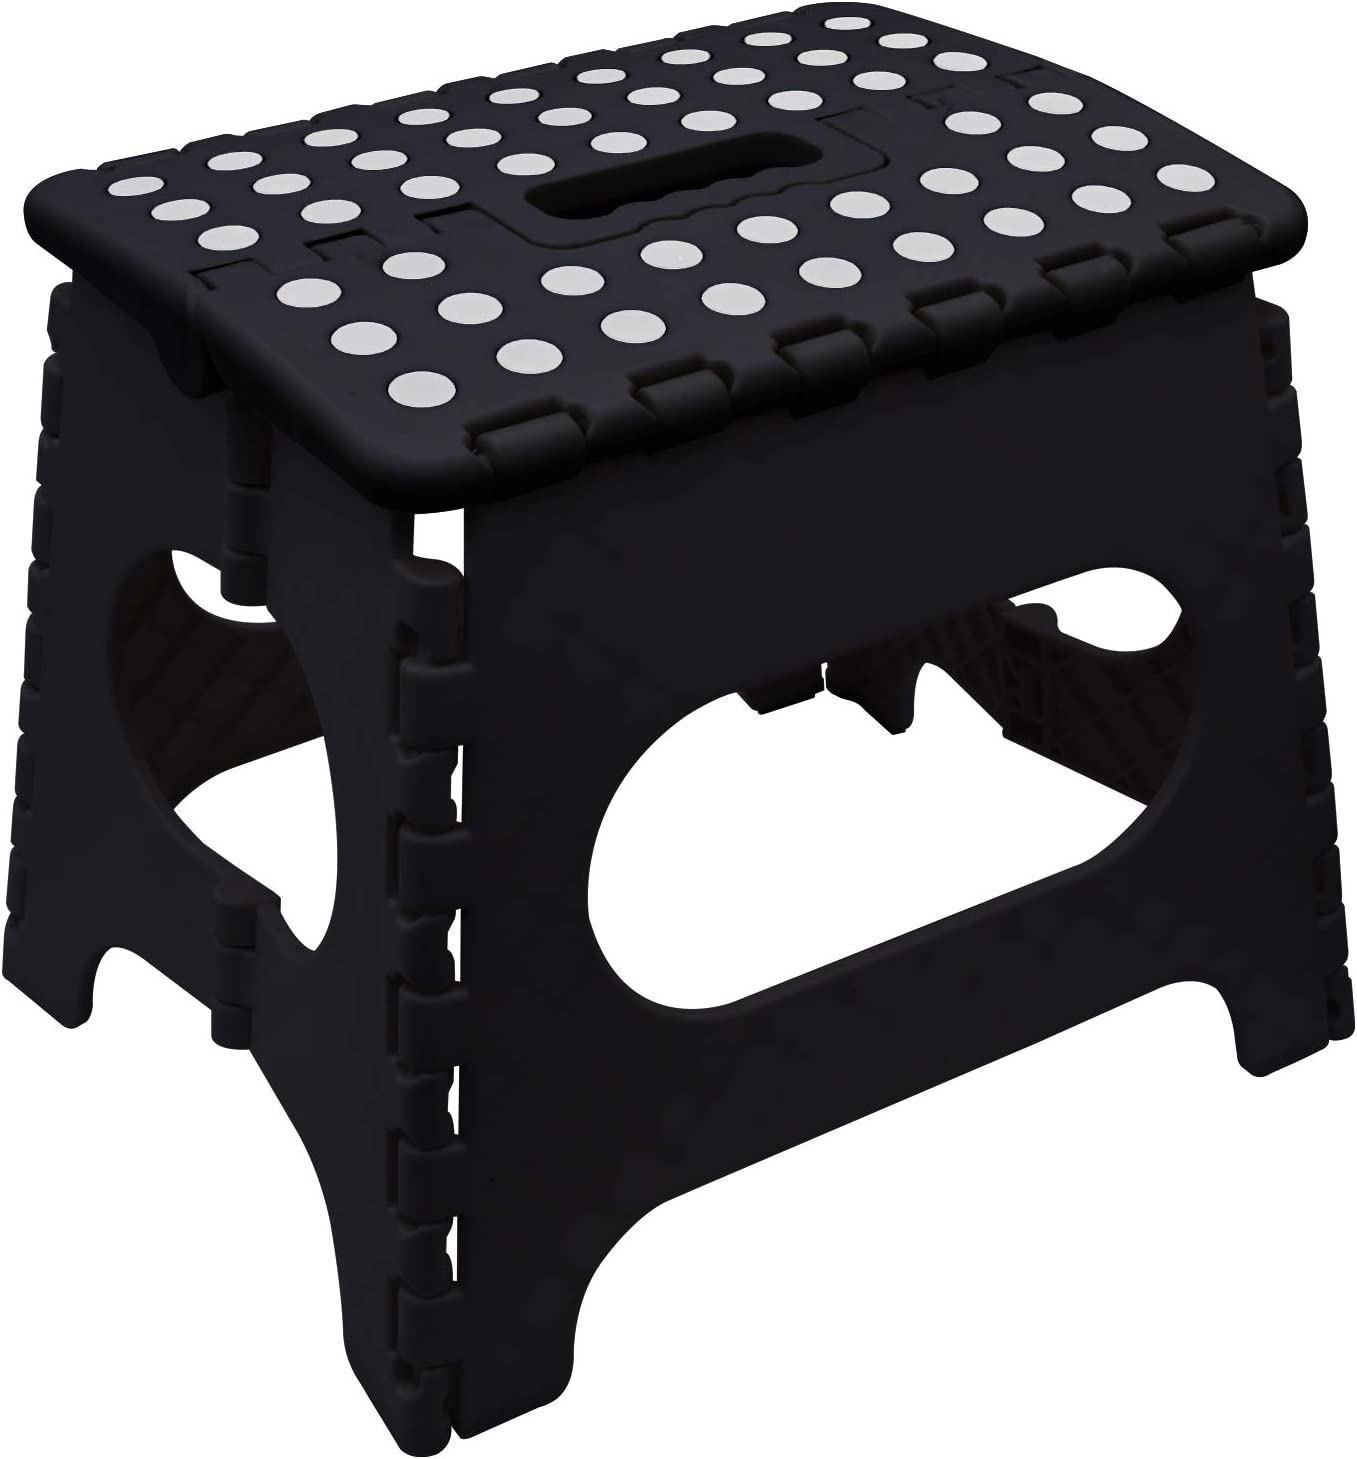 Easy Folding Stool Home Kitchen Garage Skid Resistant Strong Extra Max 100 Kg by Knight